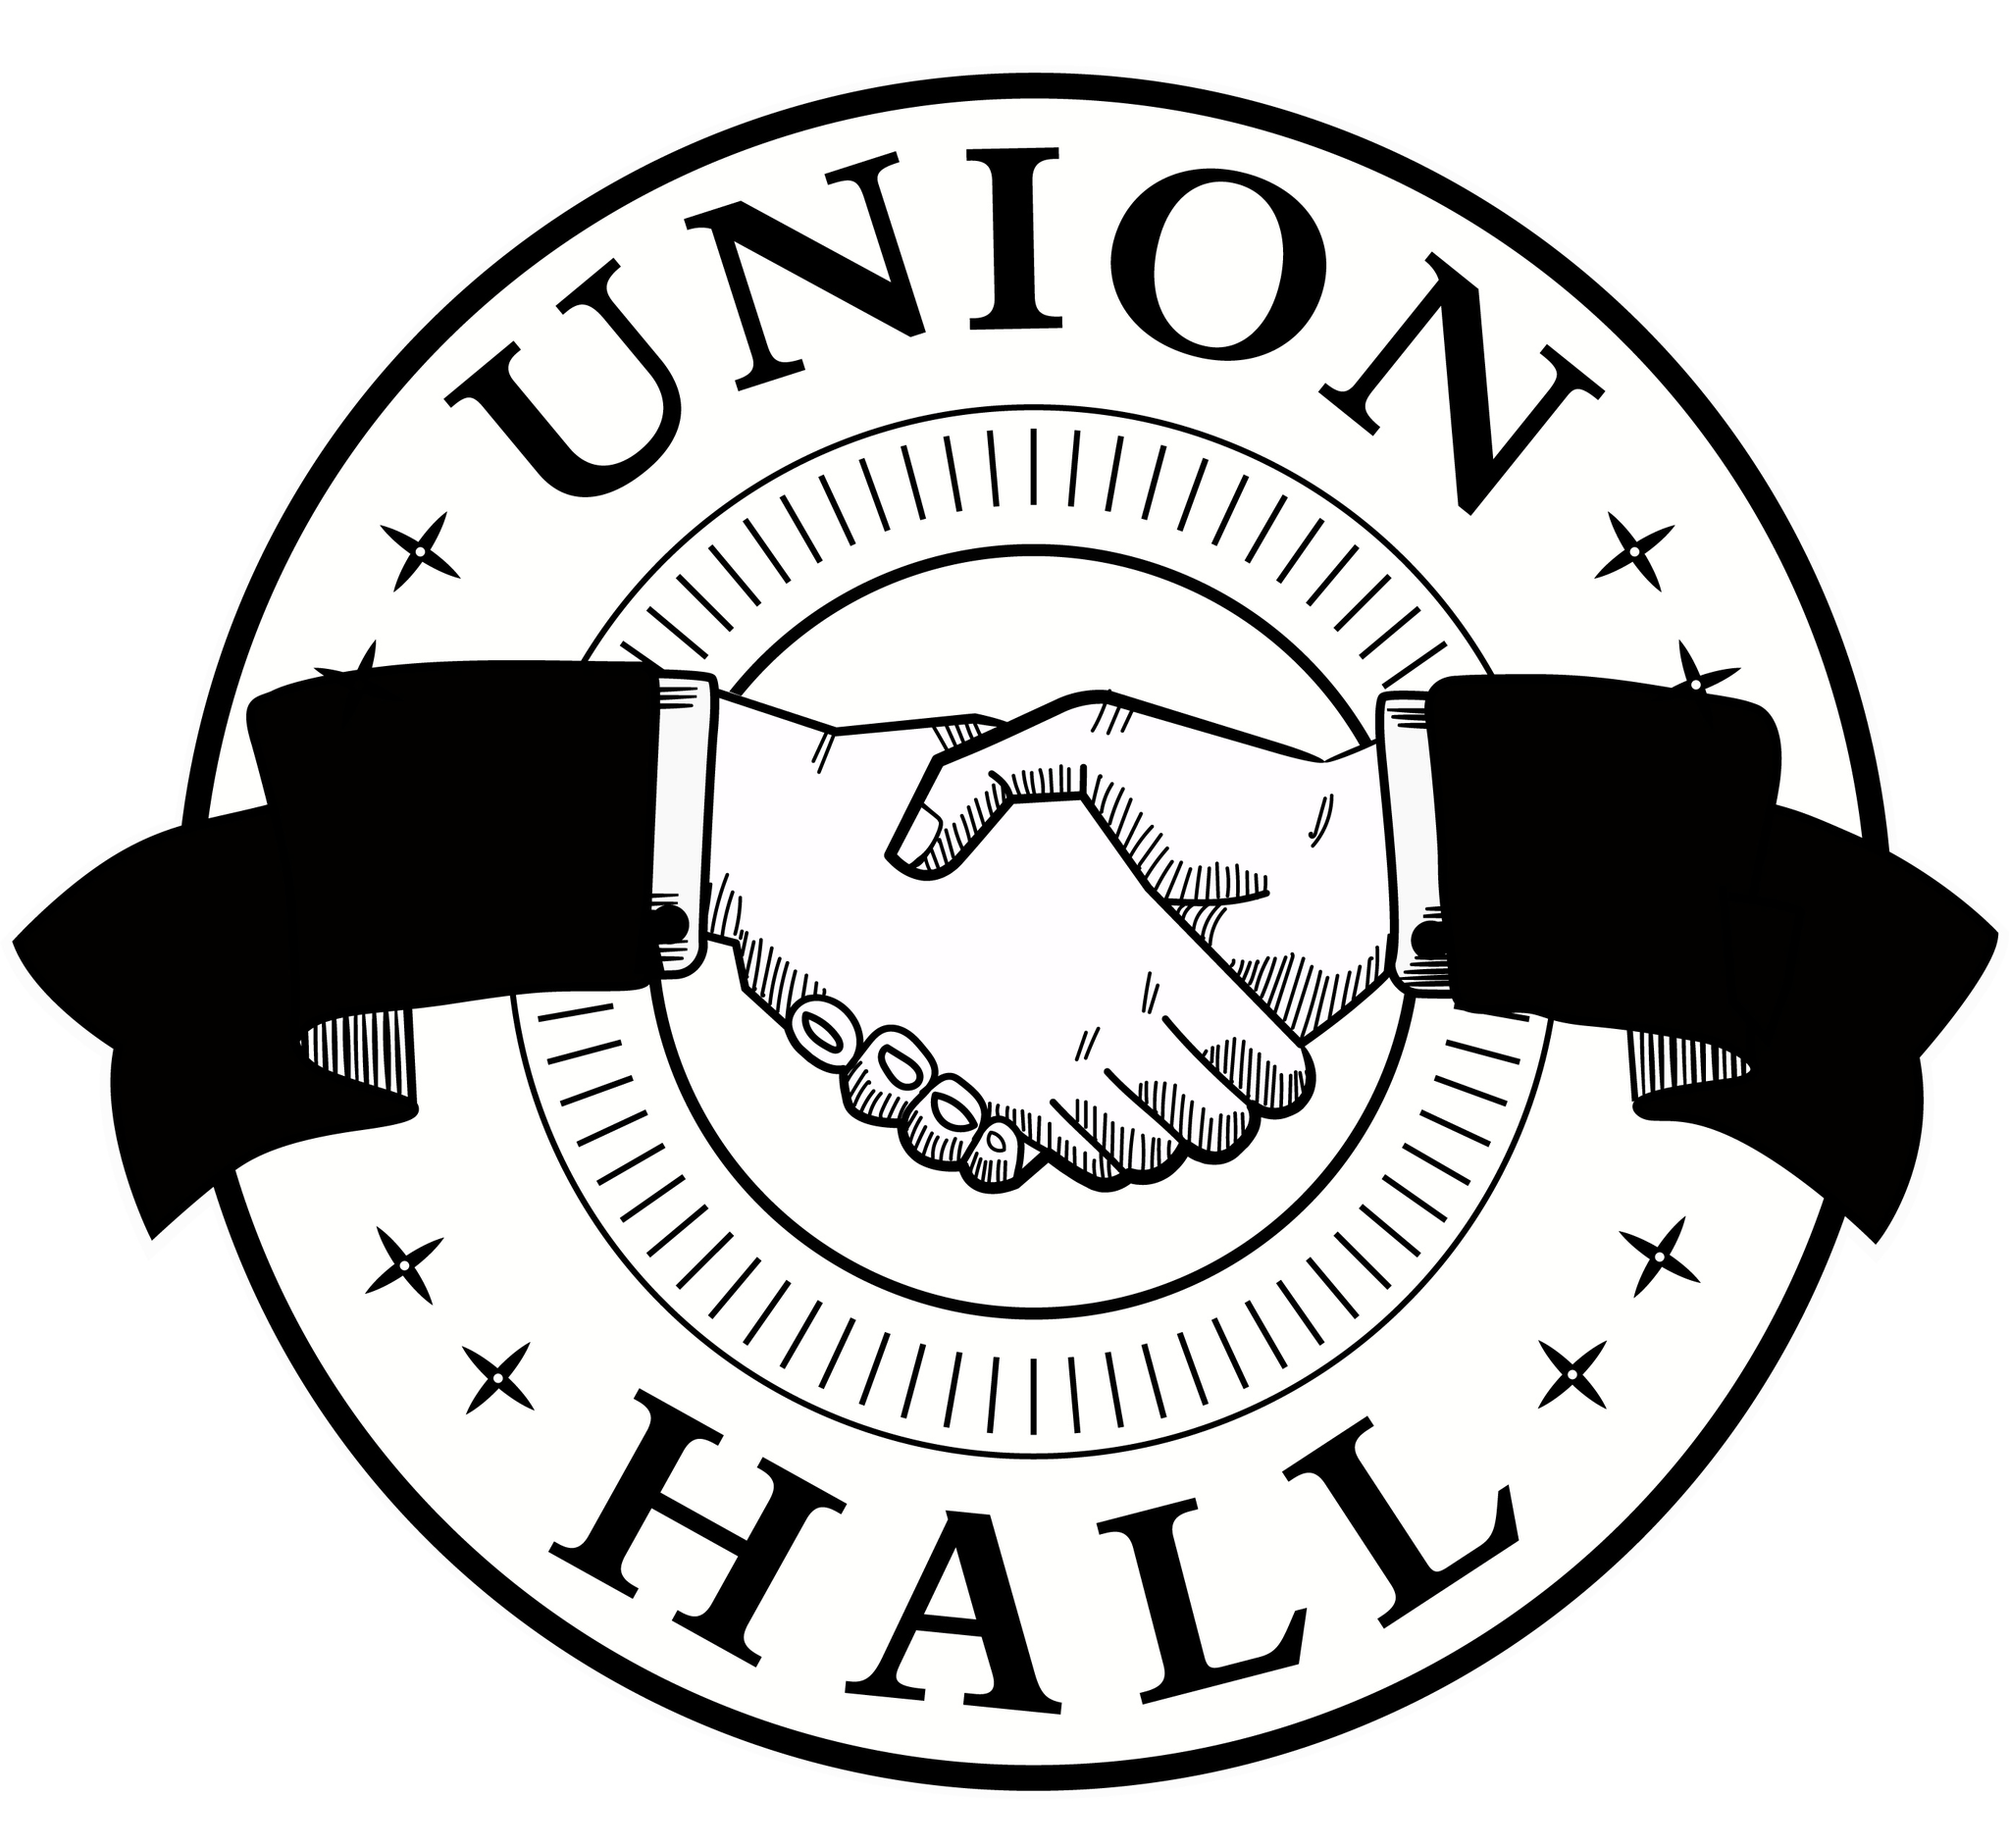 2048x1884 union hall will be closed for a private event from may may